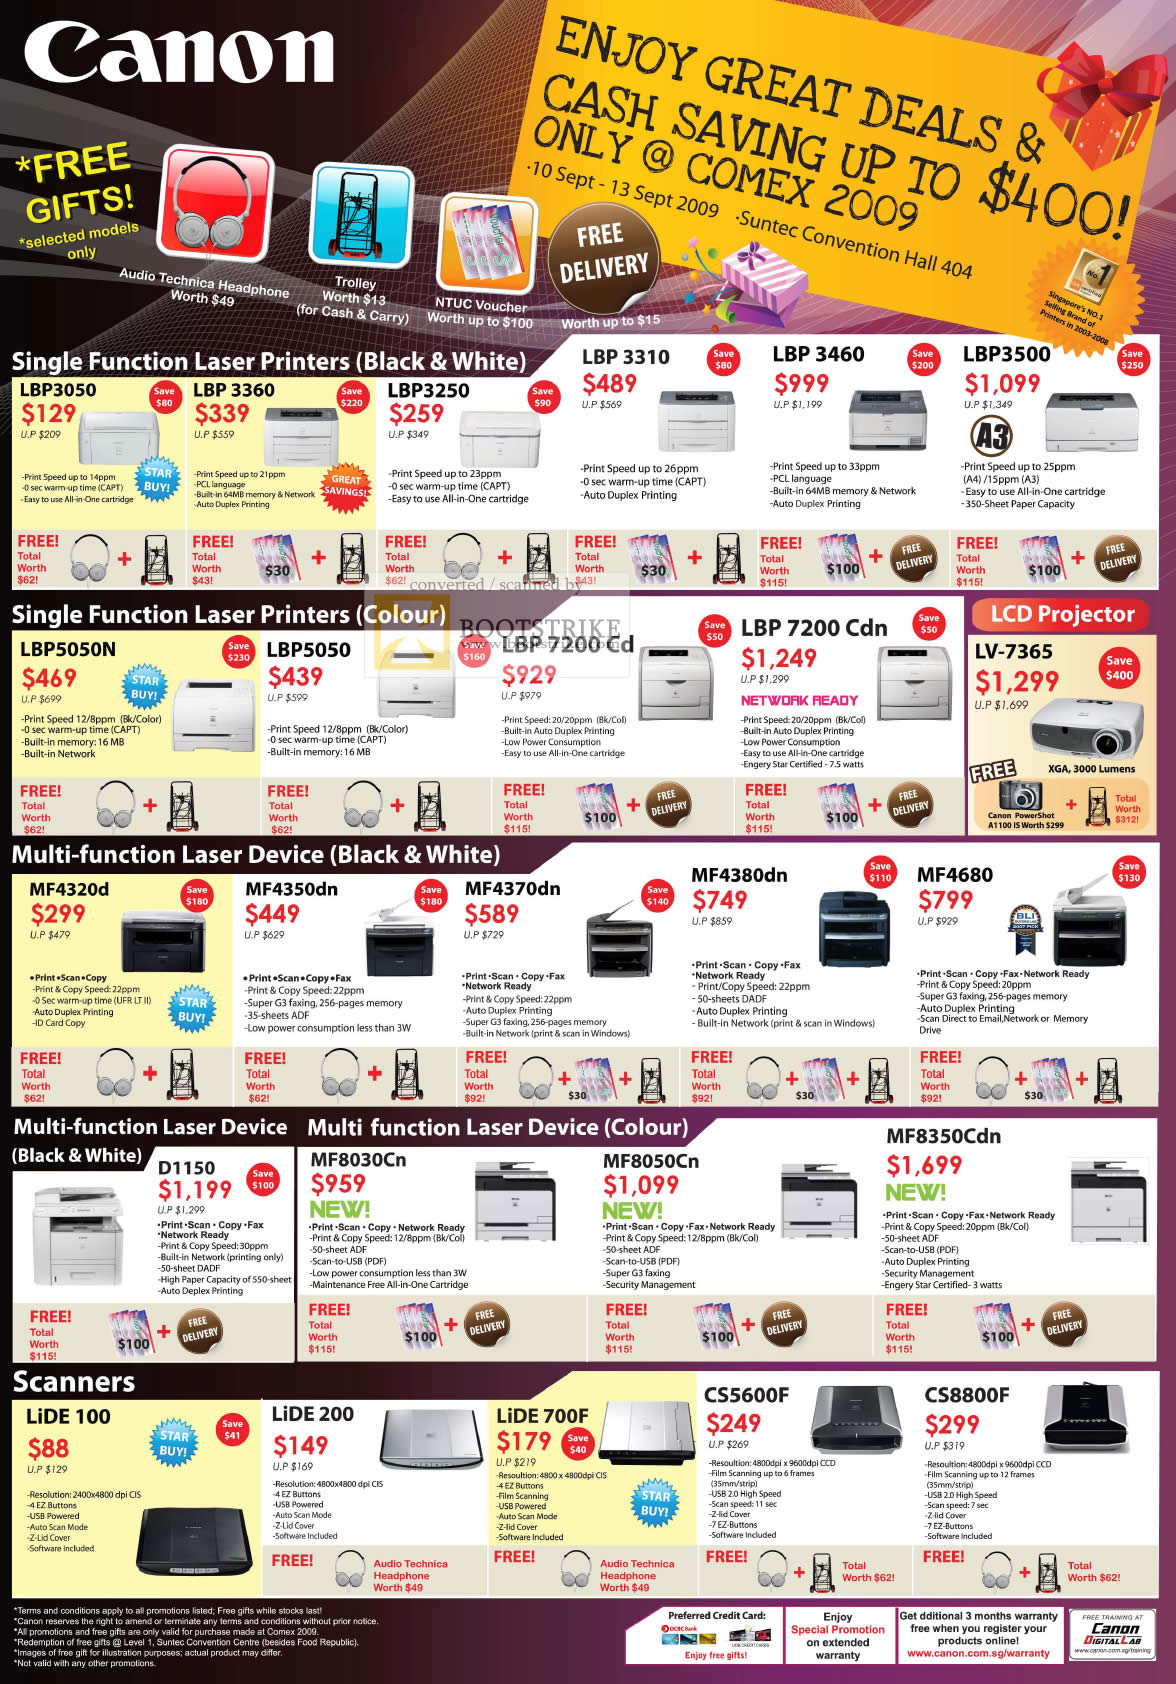 Comex 2009 price list image brochure of Canon Laser Printers Colour Multi Function Scanners